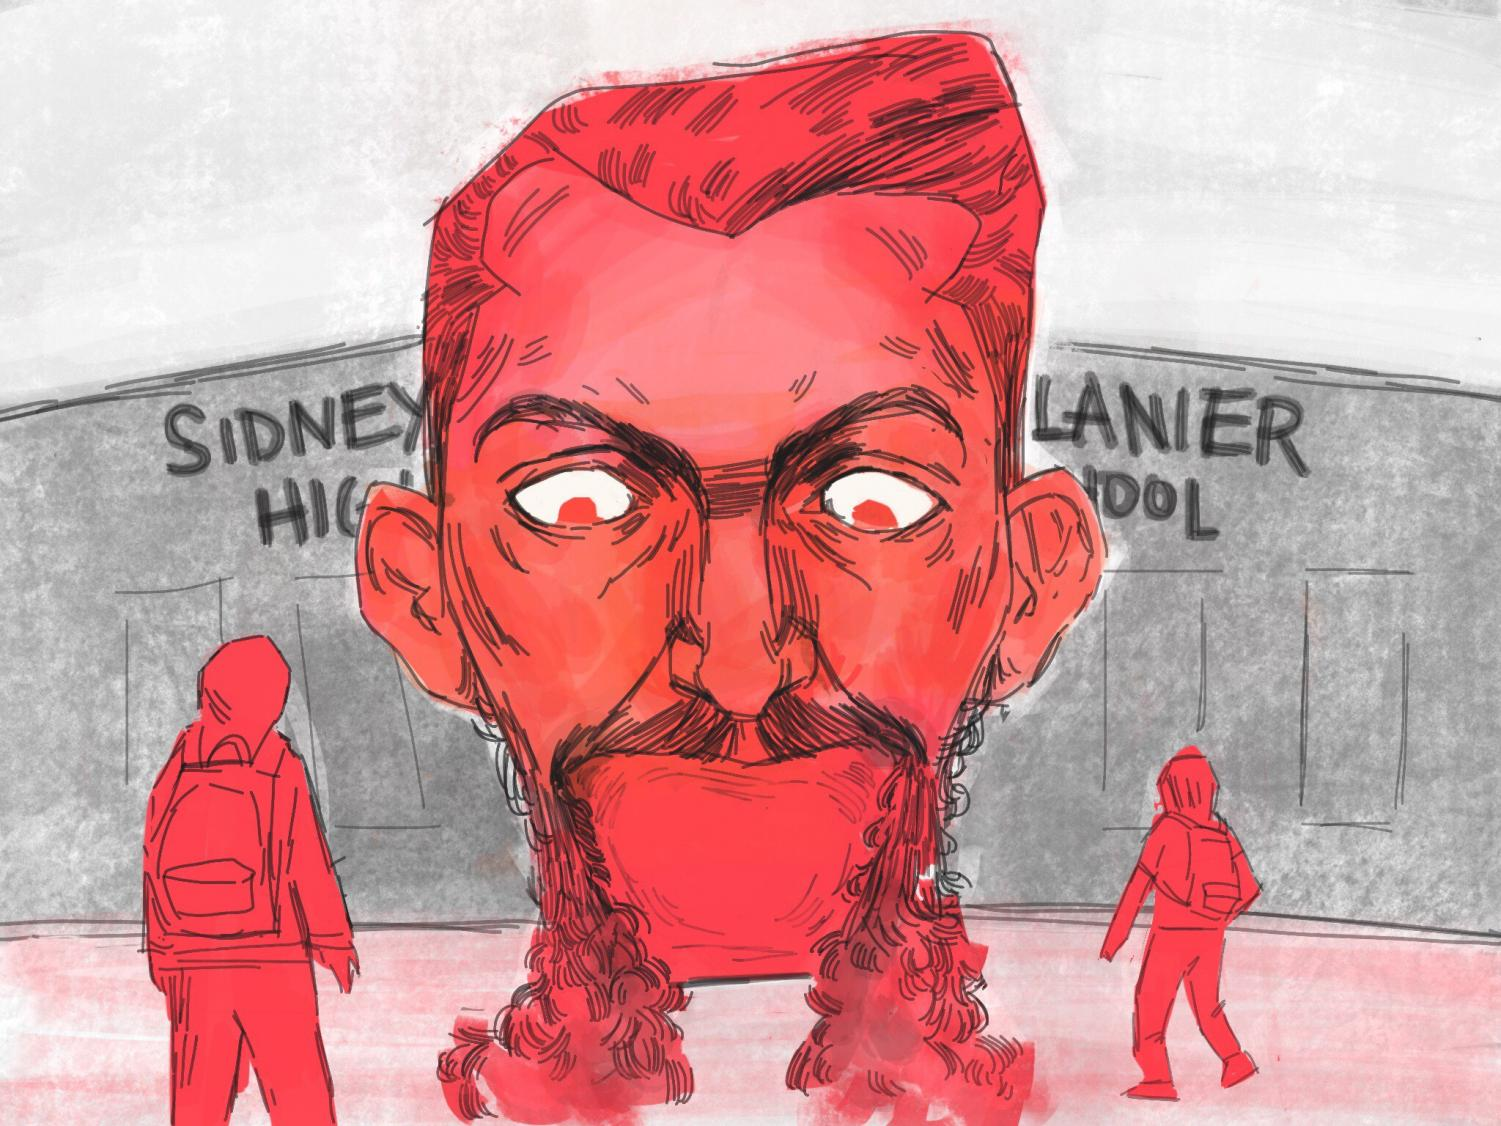 Sidney Lanier was the latest and last Austin ISD namesake with Confederate ties still standing, but on March 25, the Board of Trustees voted to change the name of Lanier High School to Juan Navarro High School. Navarro is a Lanier alumnus who was killed while serving in the United States Armed Forces in Afghanistan in 2012. Illustration by Bella Russo.